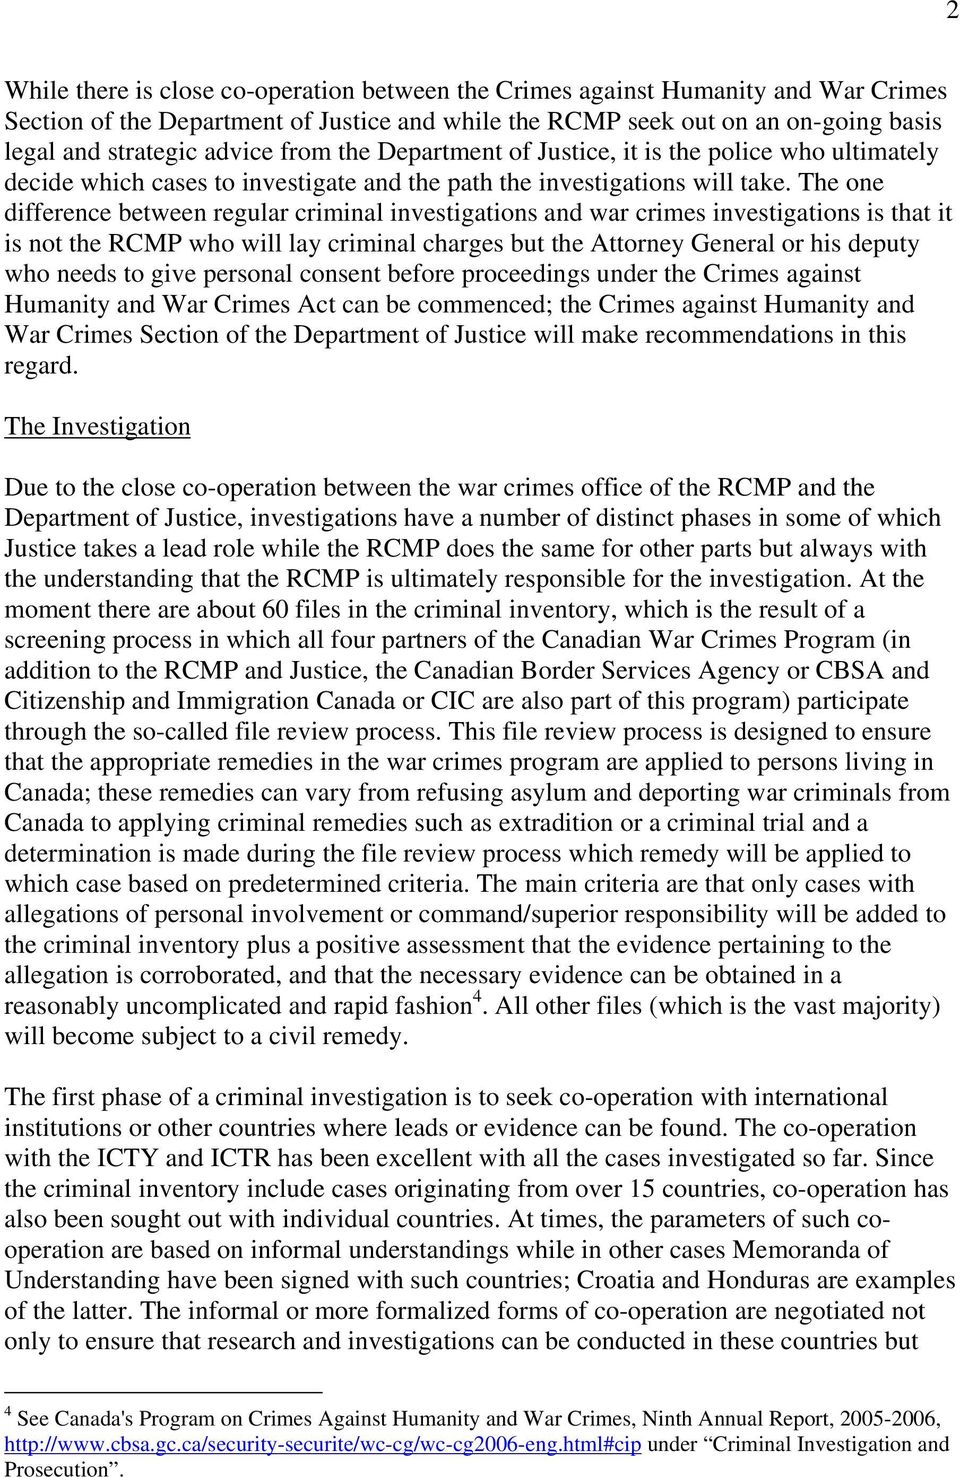 The one difference between regular criminal investigations and war crimes investigations is that it is not the RCMP who will lay criminal charges but the Attorney General or his deputy who needs to